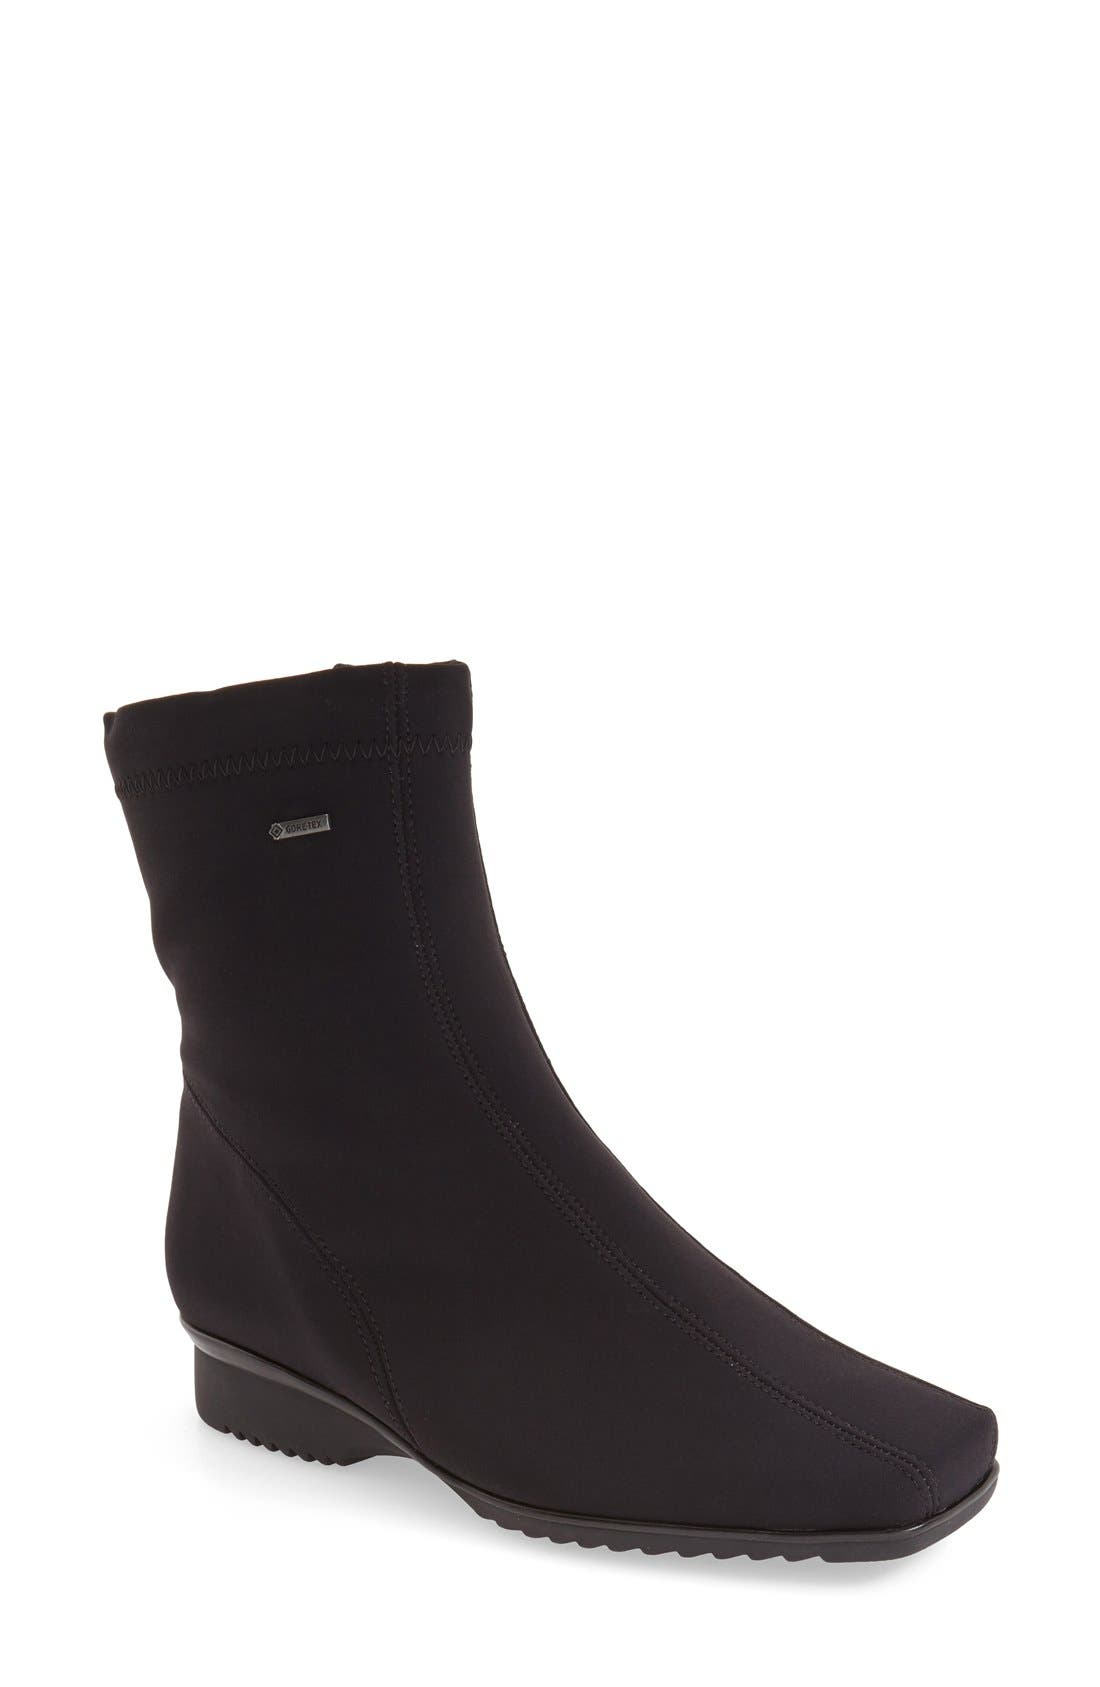 ARA 'Page' Waterproof Gore-Tex<sup>®</sup> Ankle Bootie, Main, color, BLACK FABRIC